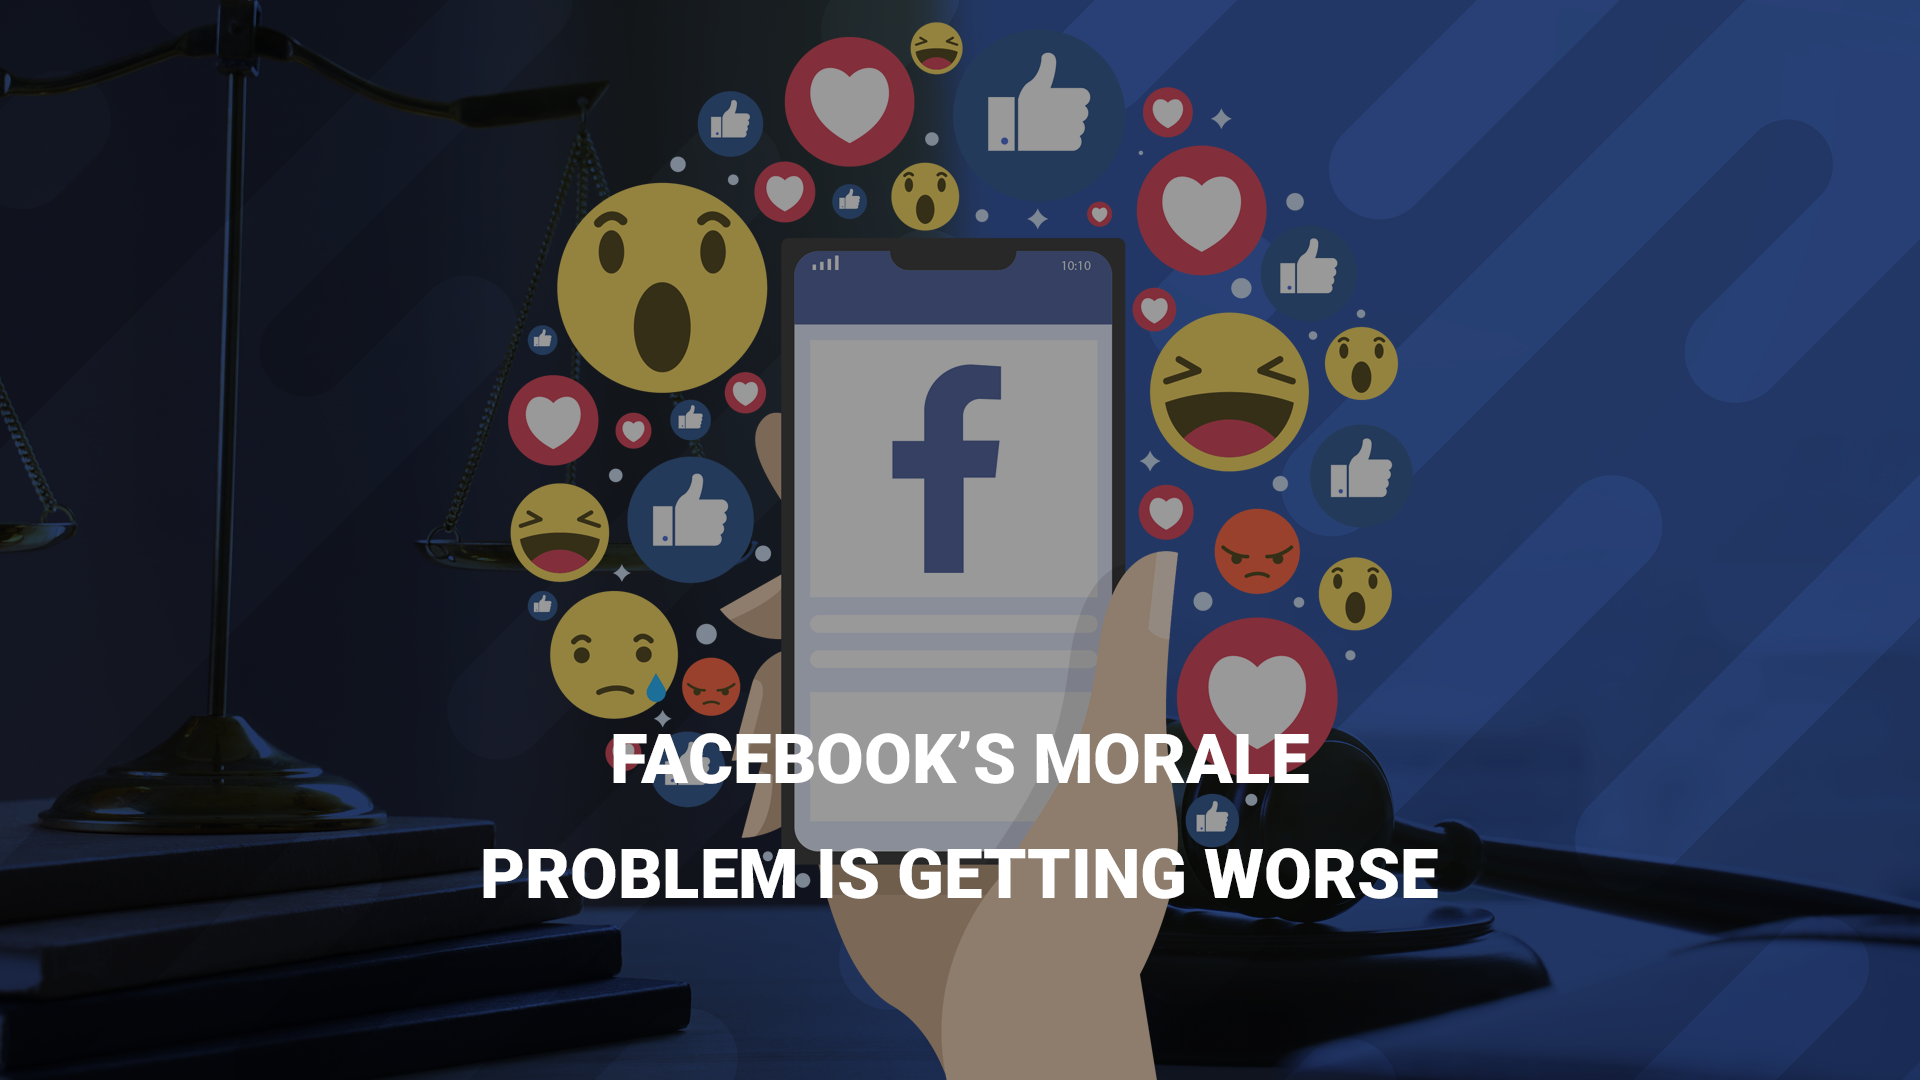 Facebook's morale problem is getting worse